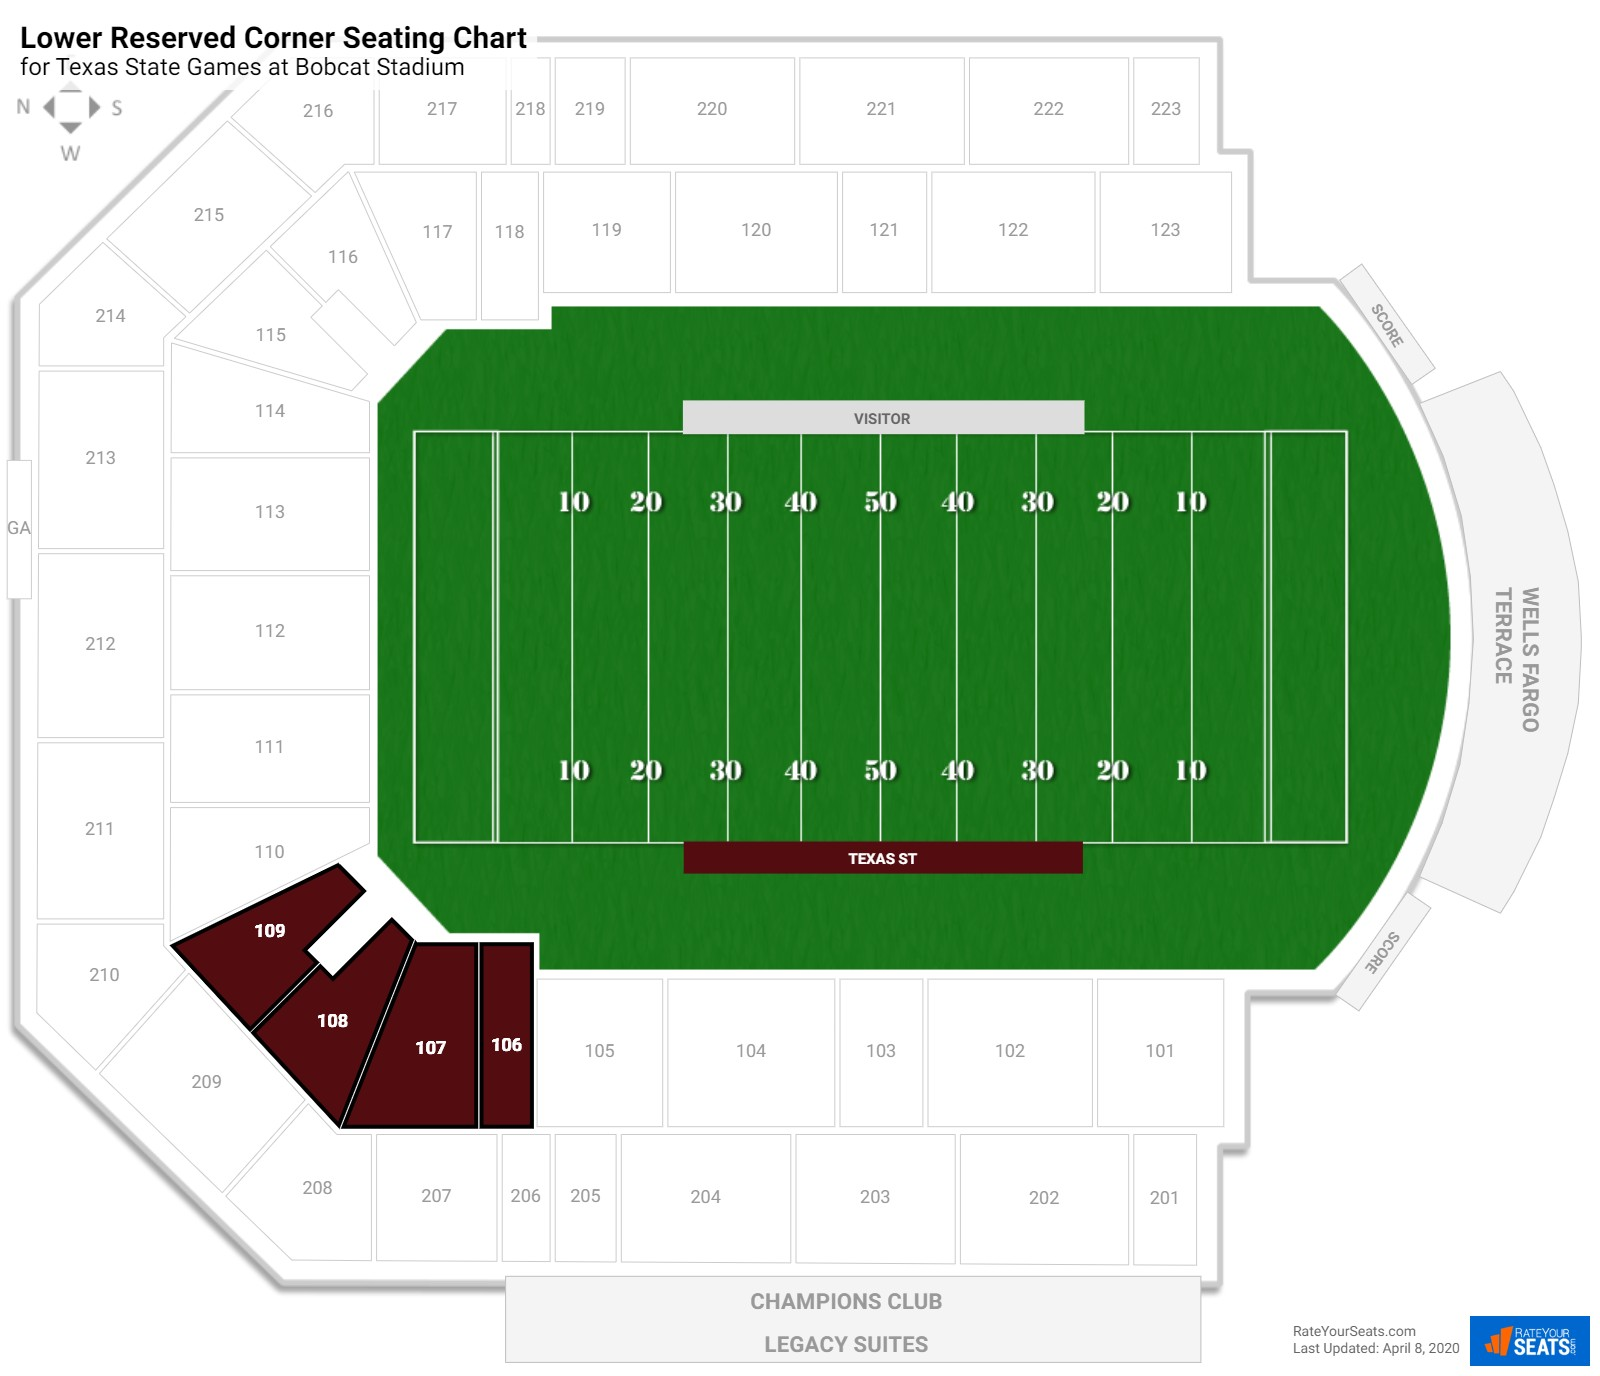 Bobcat Stadium Lower Reserved Corner seating chart